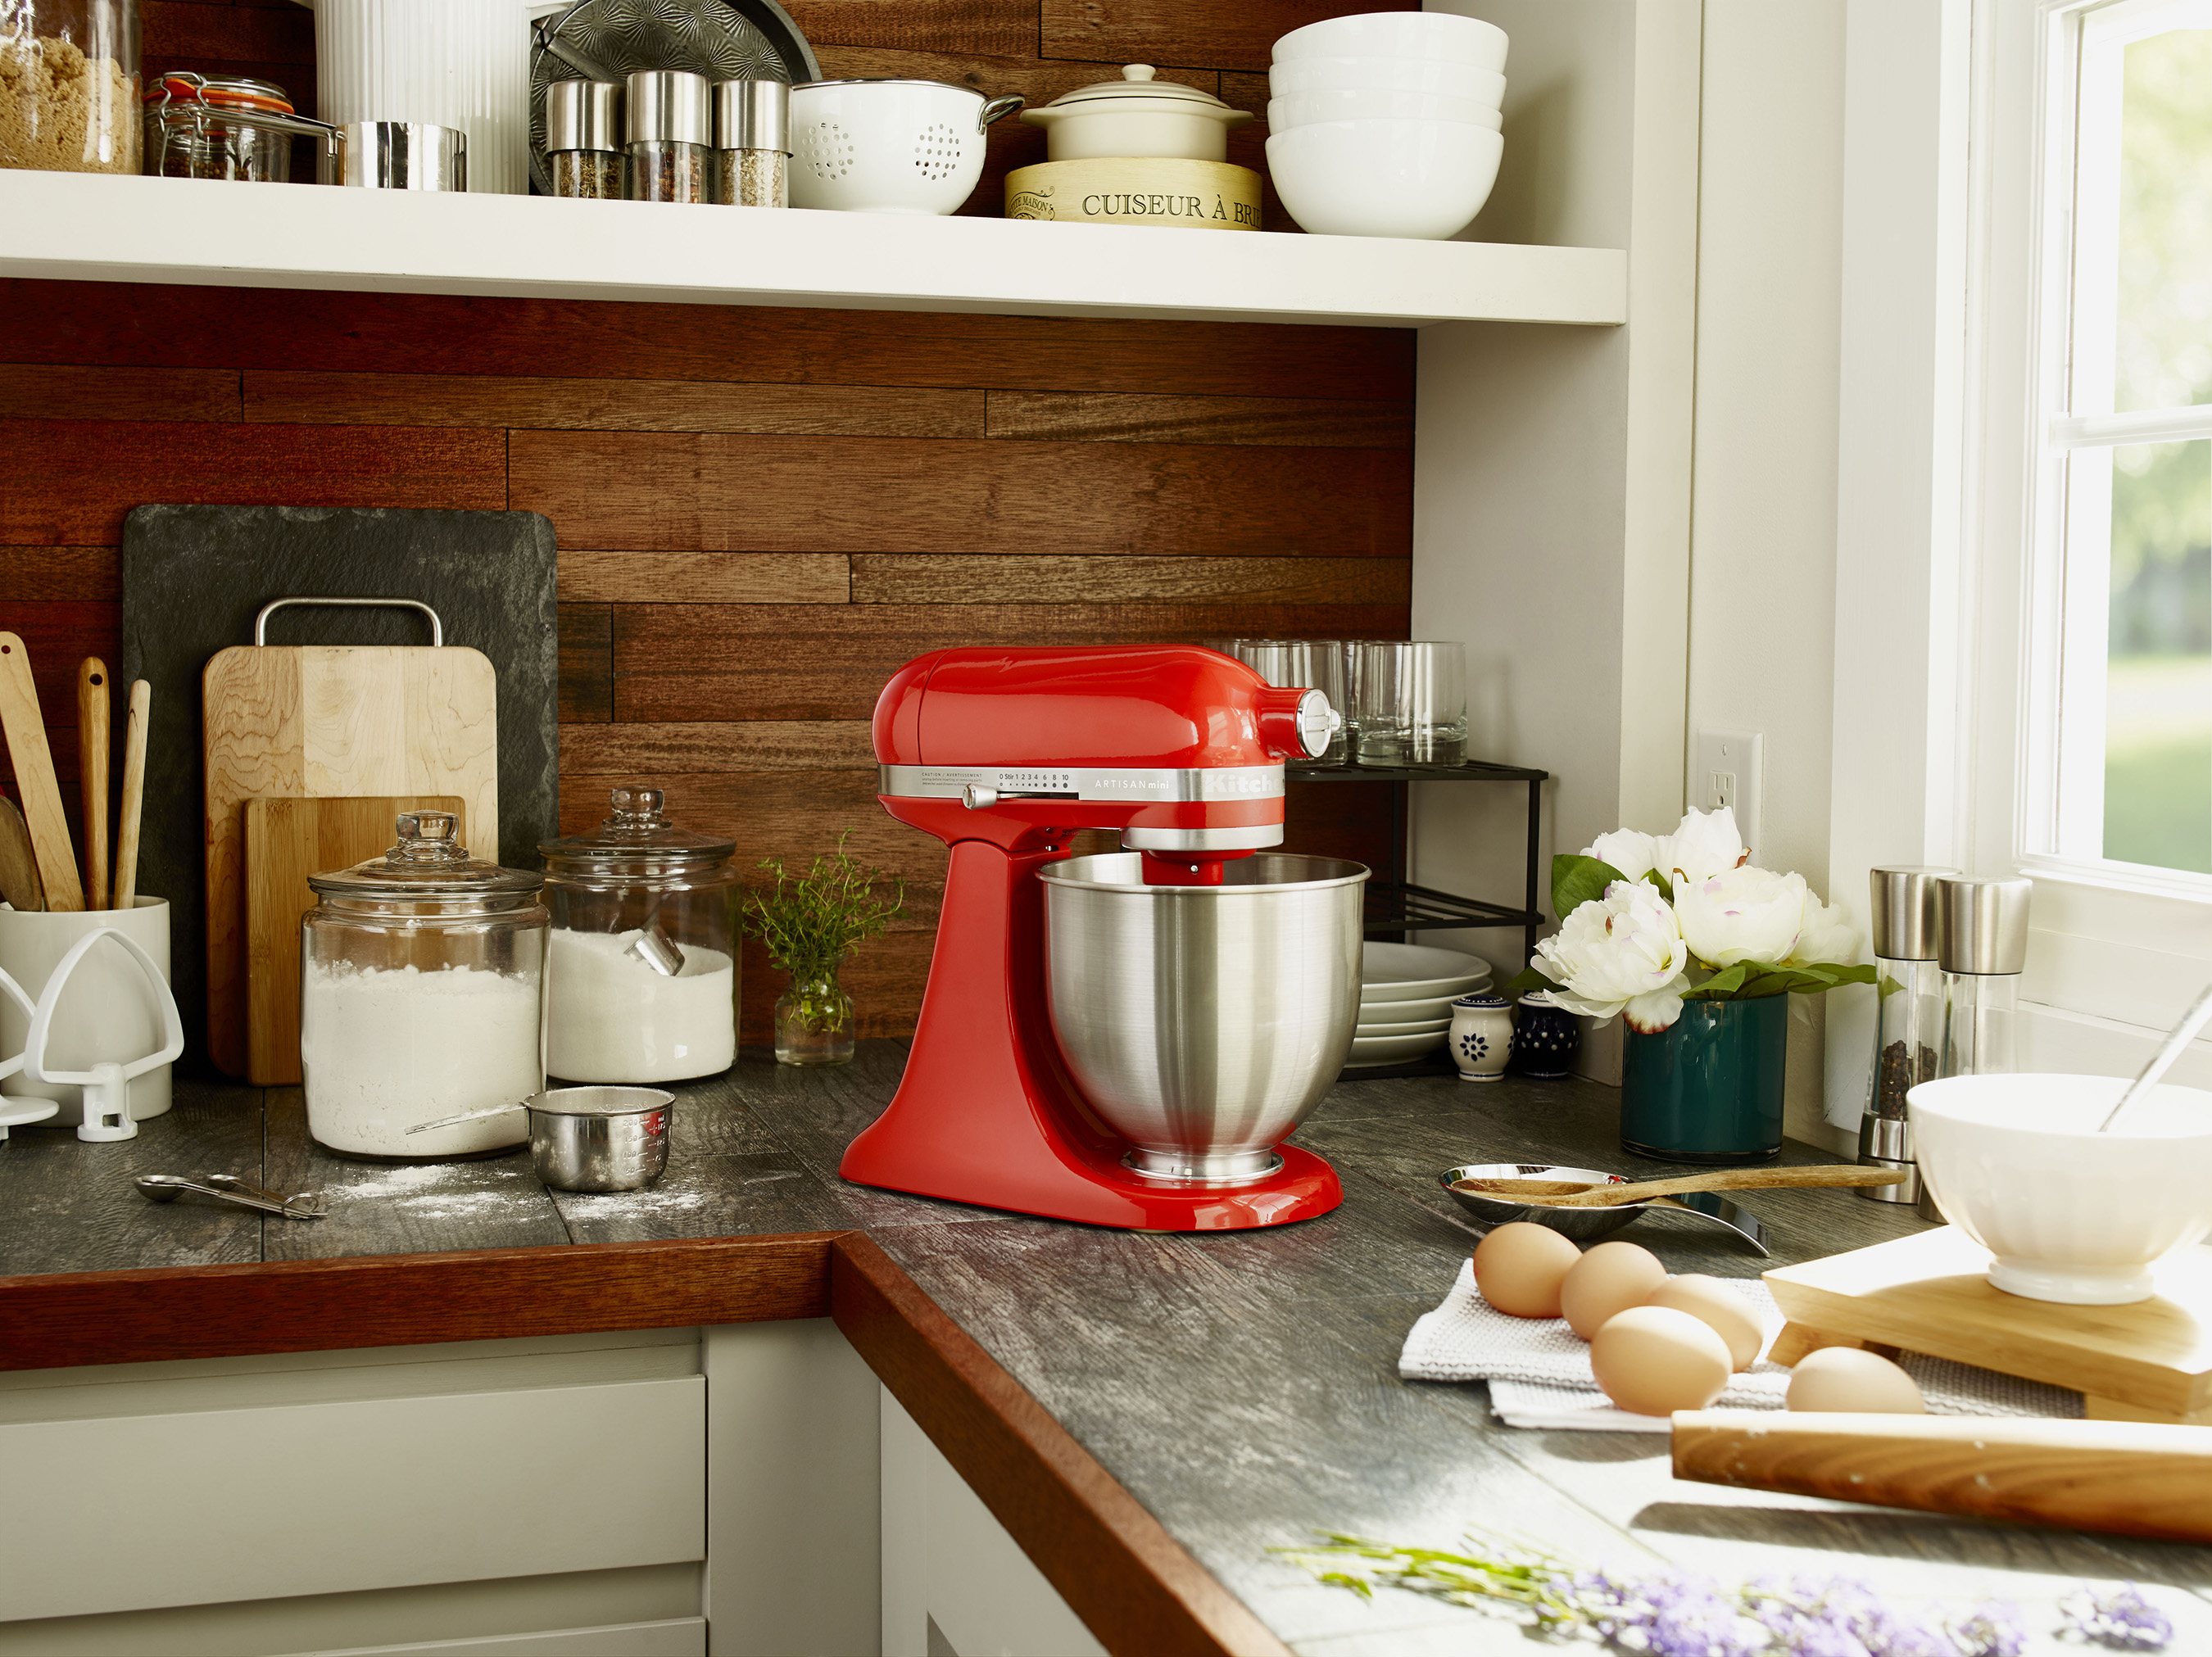 Kitchenaid Colors 2016 Kitchenaid Unveils Fresh New Colors At Housewares Show